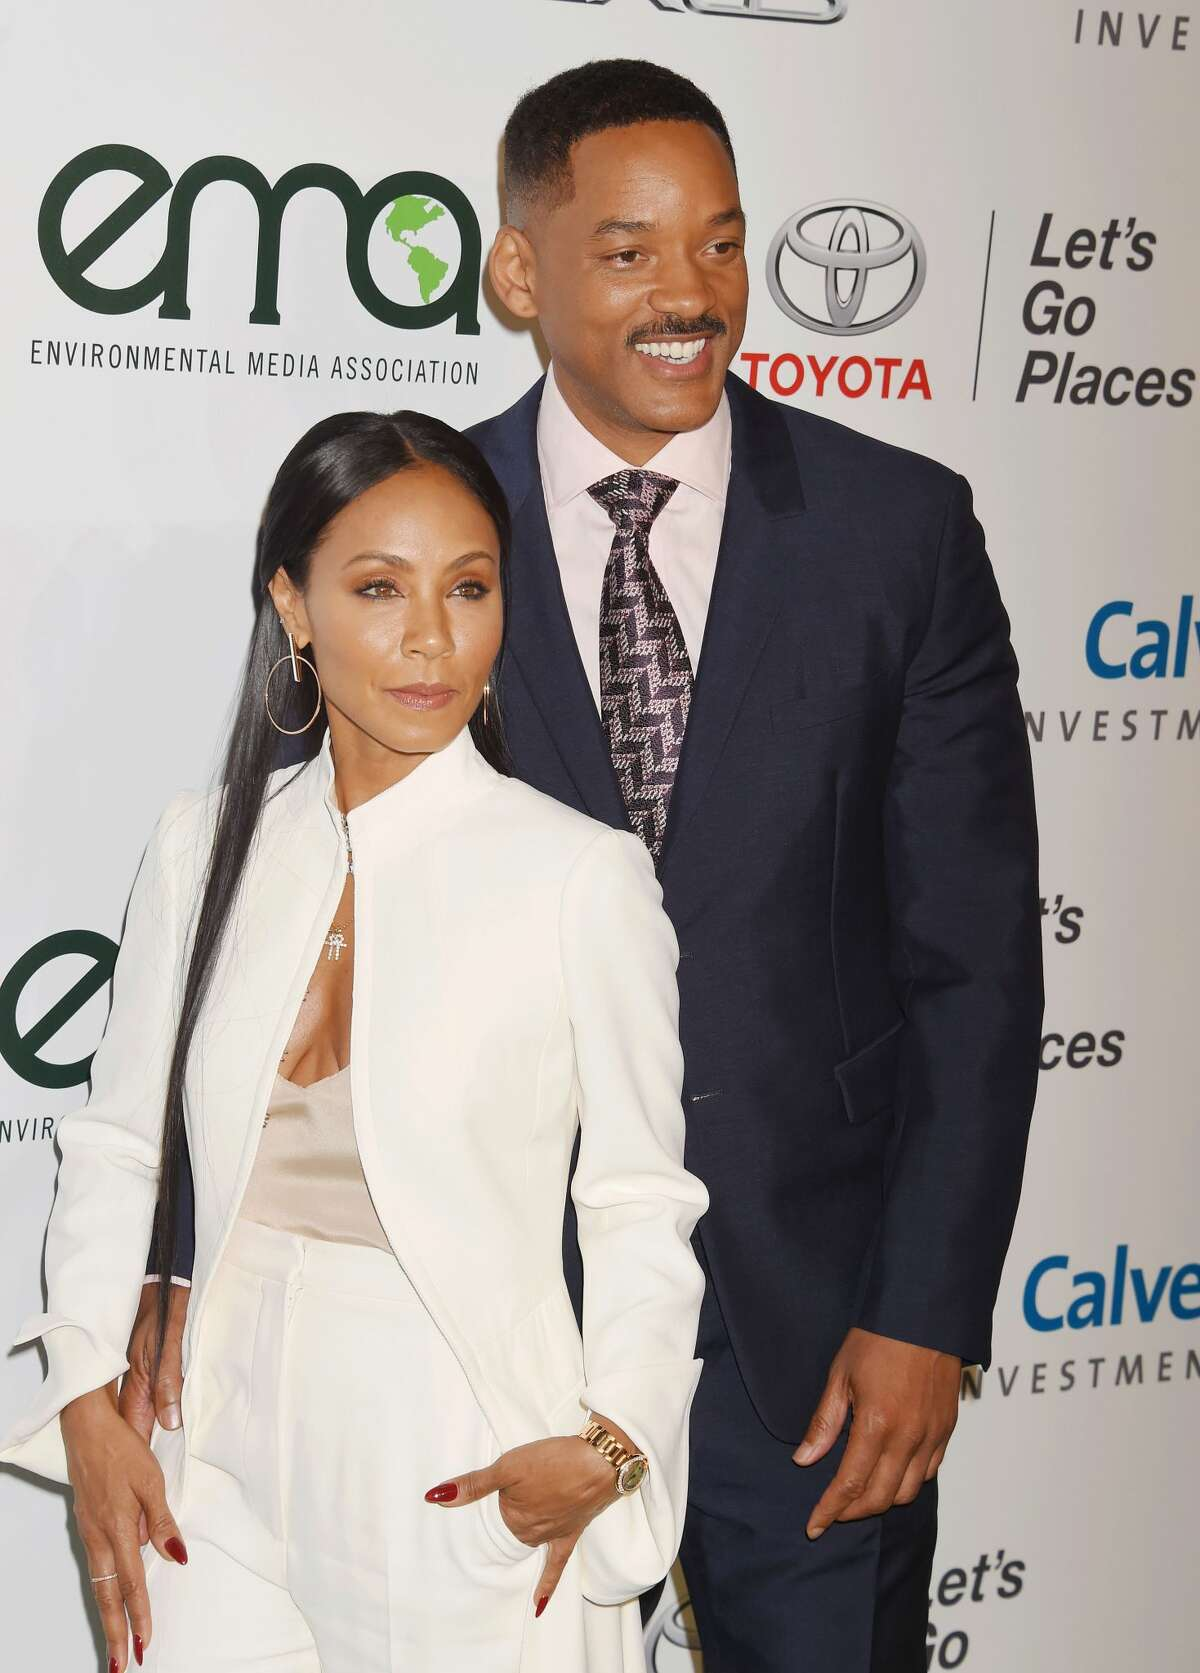 """Jada Pinkett Smith and Will Smith The actor told ET, """"""""We've been married 20 years and we've been asking ourselves [what's the secret to marriage]and really at the end of the day it's just not quitting... You can't expect it to be easy, it's like our marriagewas the most difficult, grueling, excruciating thing that we have ever taken on in our lives. And you know were just not quitters."""""""